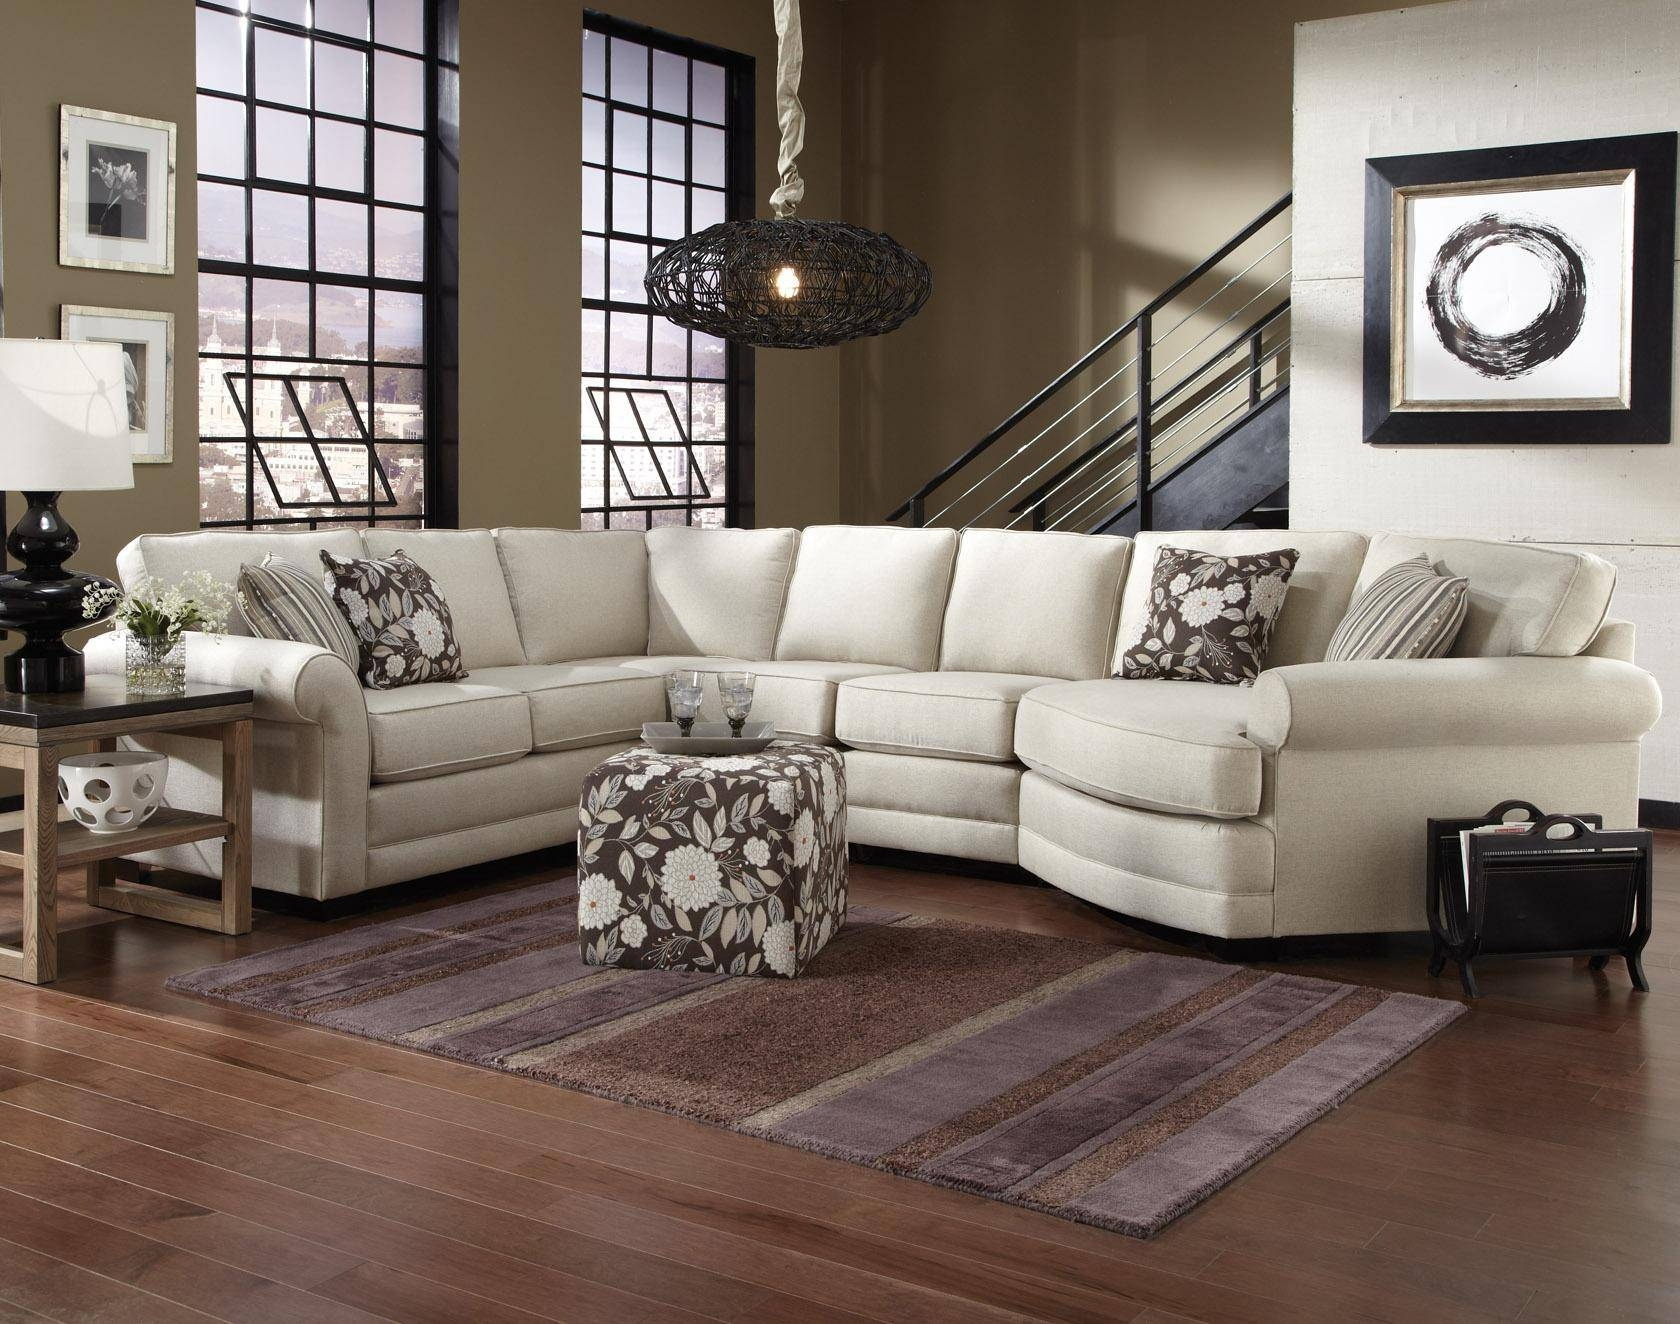 England Brantley 5 Seat Sectional Sofa With Cuddler - Dunk intended for Cuddler Sectional Sofa (Image 12 of 30)